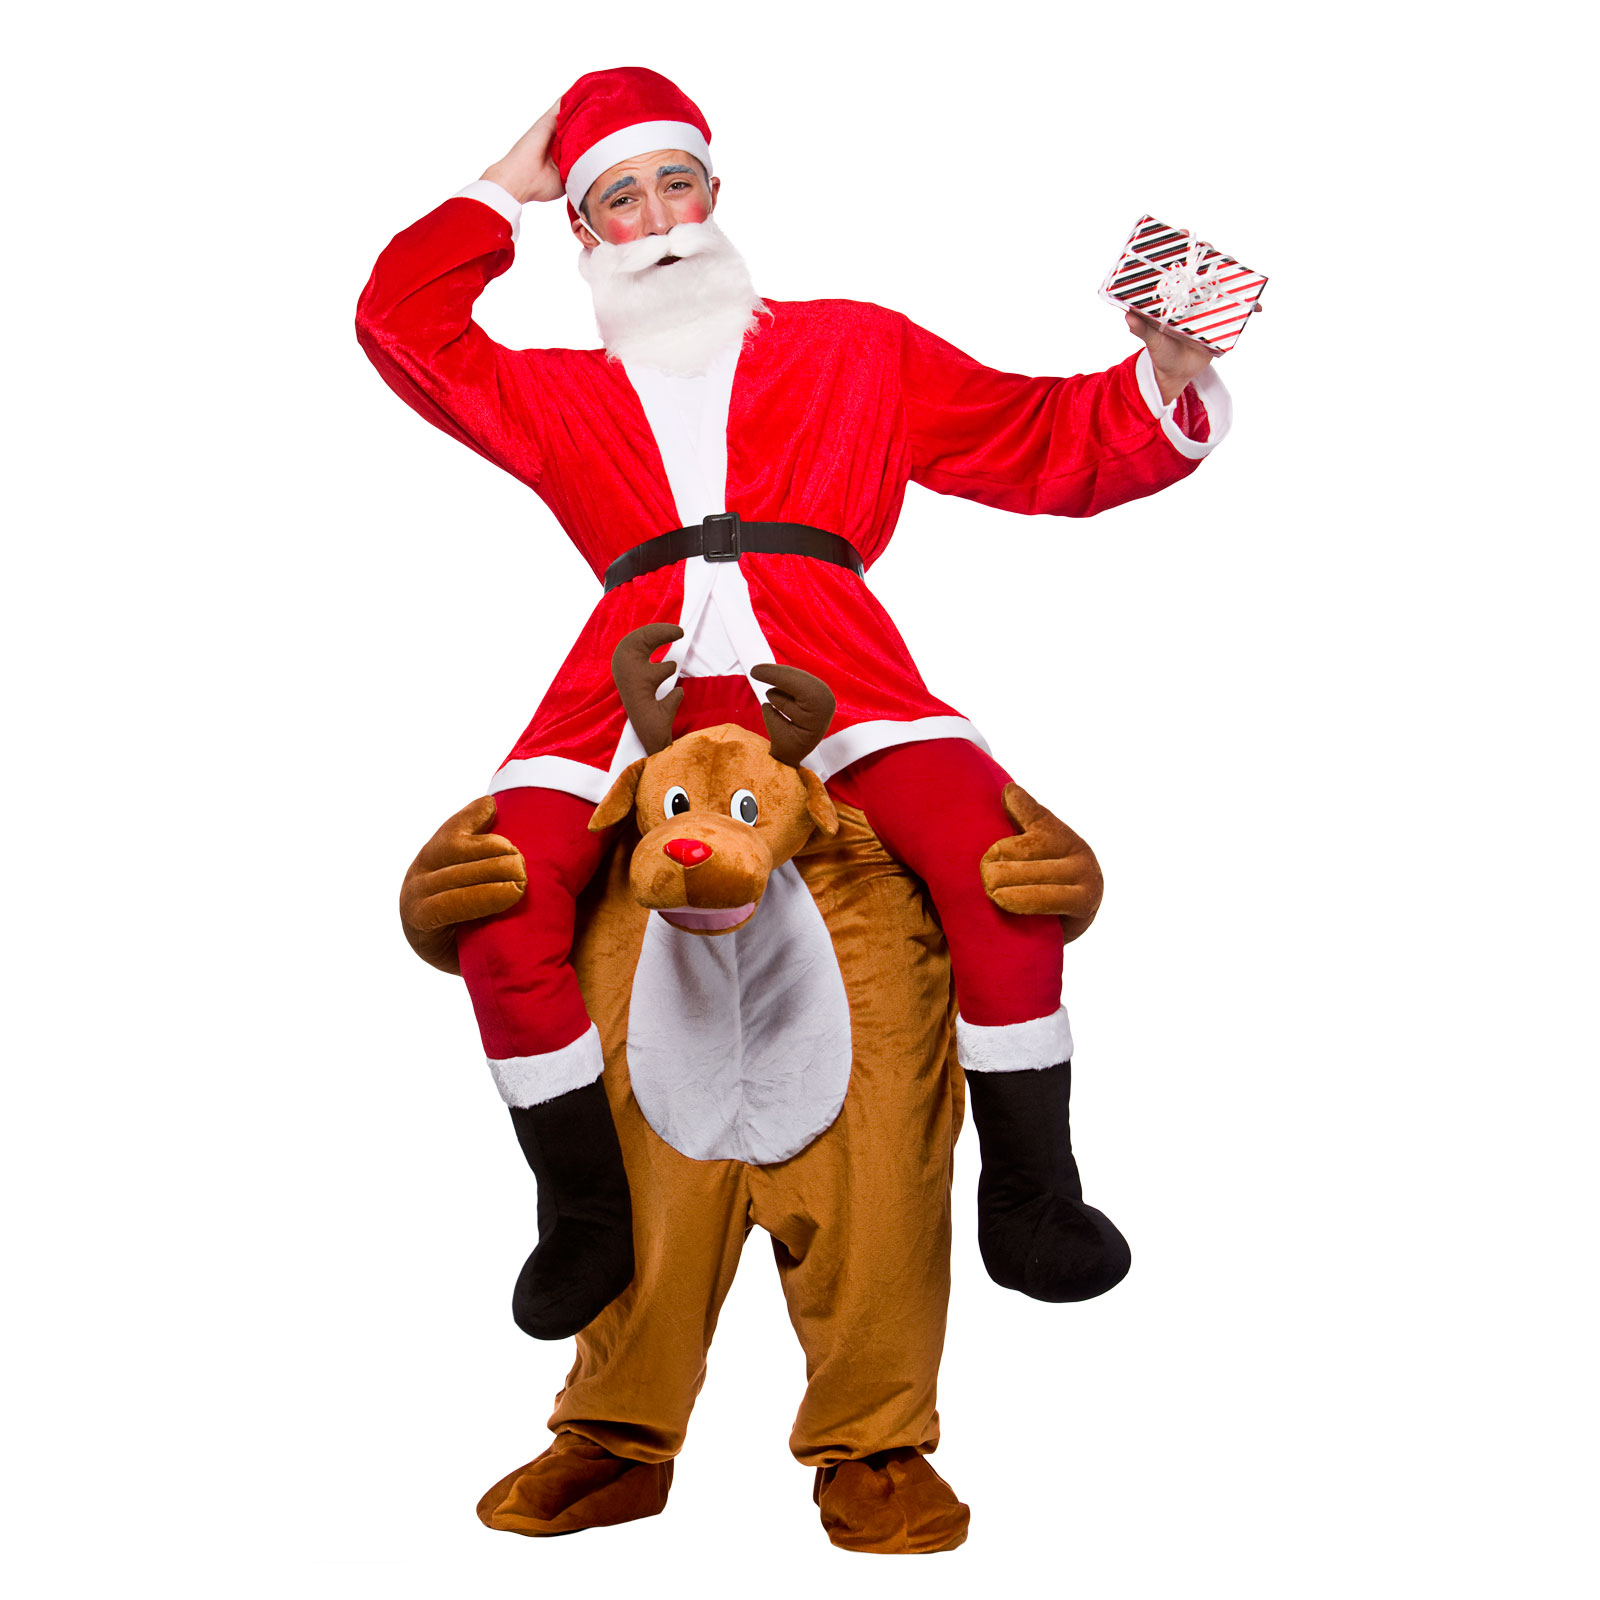 Dress up xmas party - Adults Carry Me Reindeer Festive Christmas Fancy Dress Up Party Mascot Costume